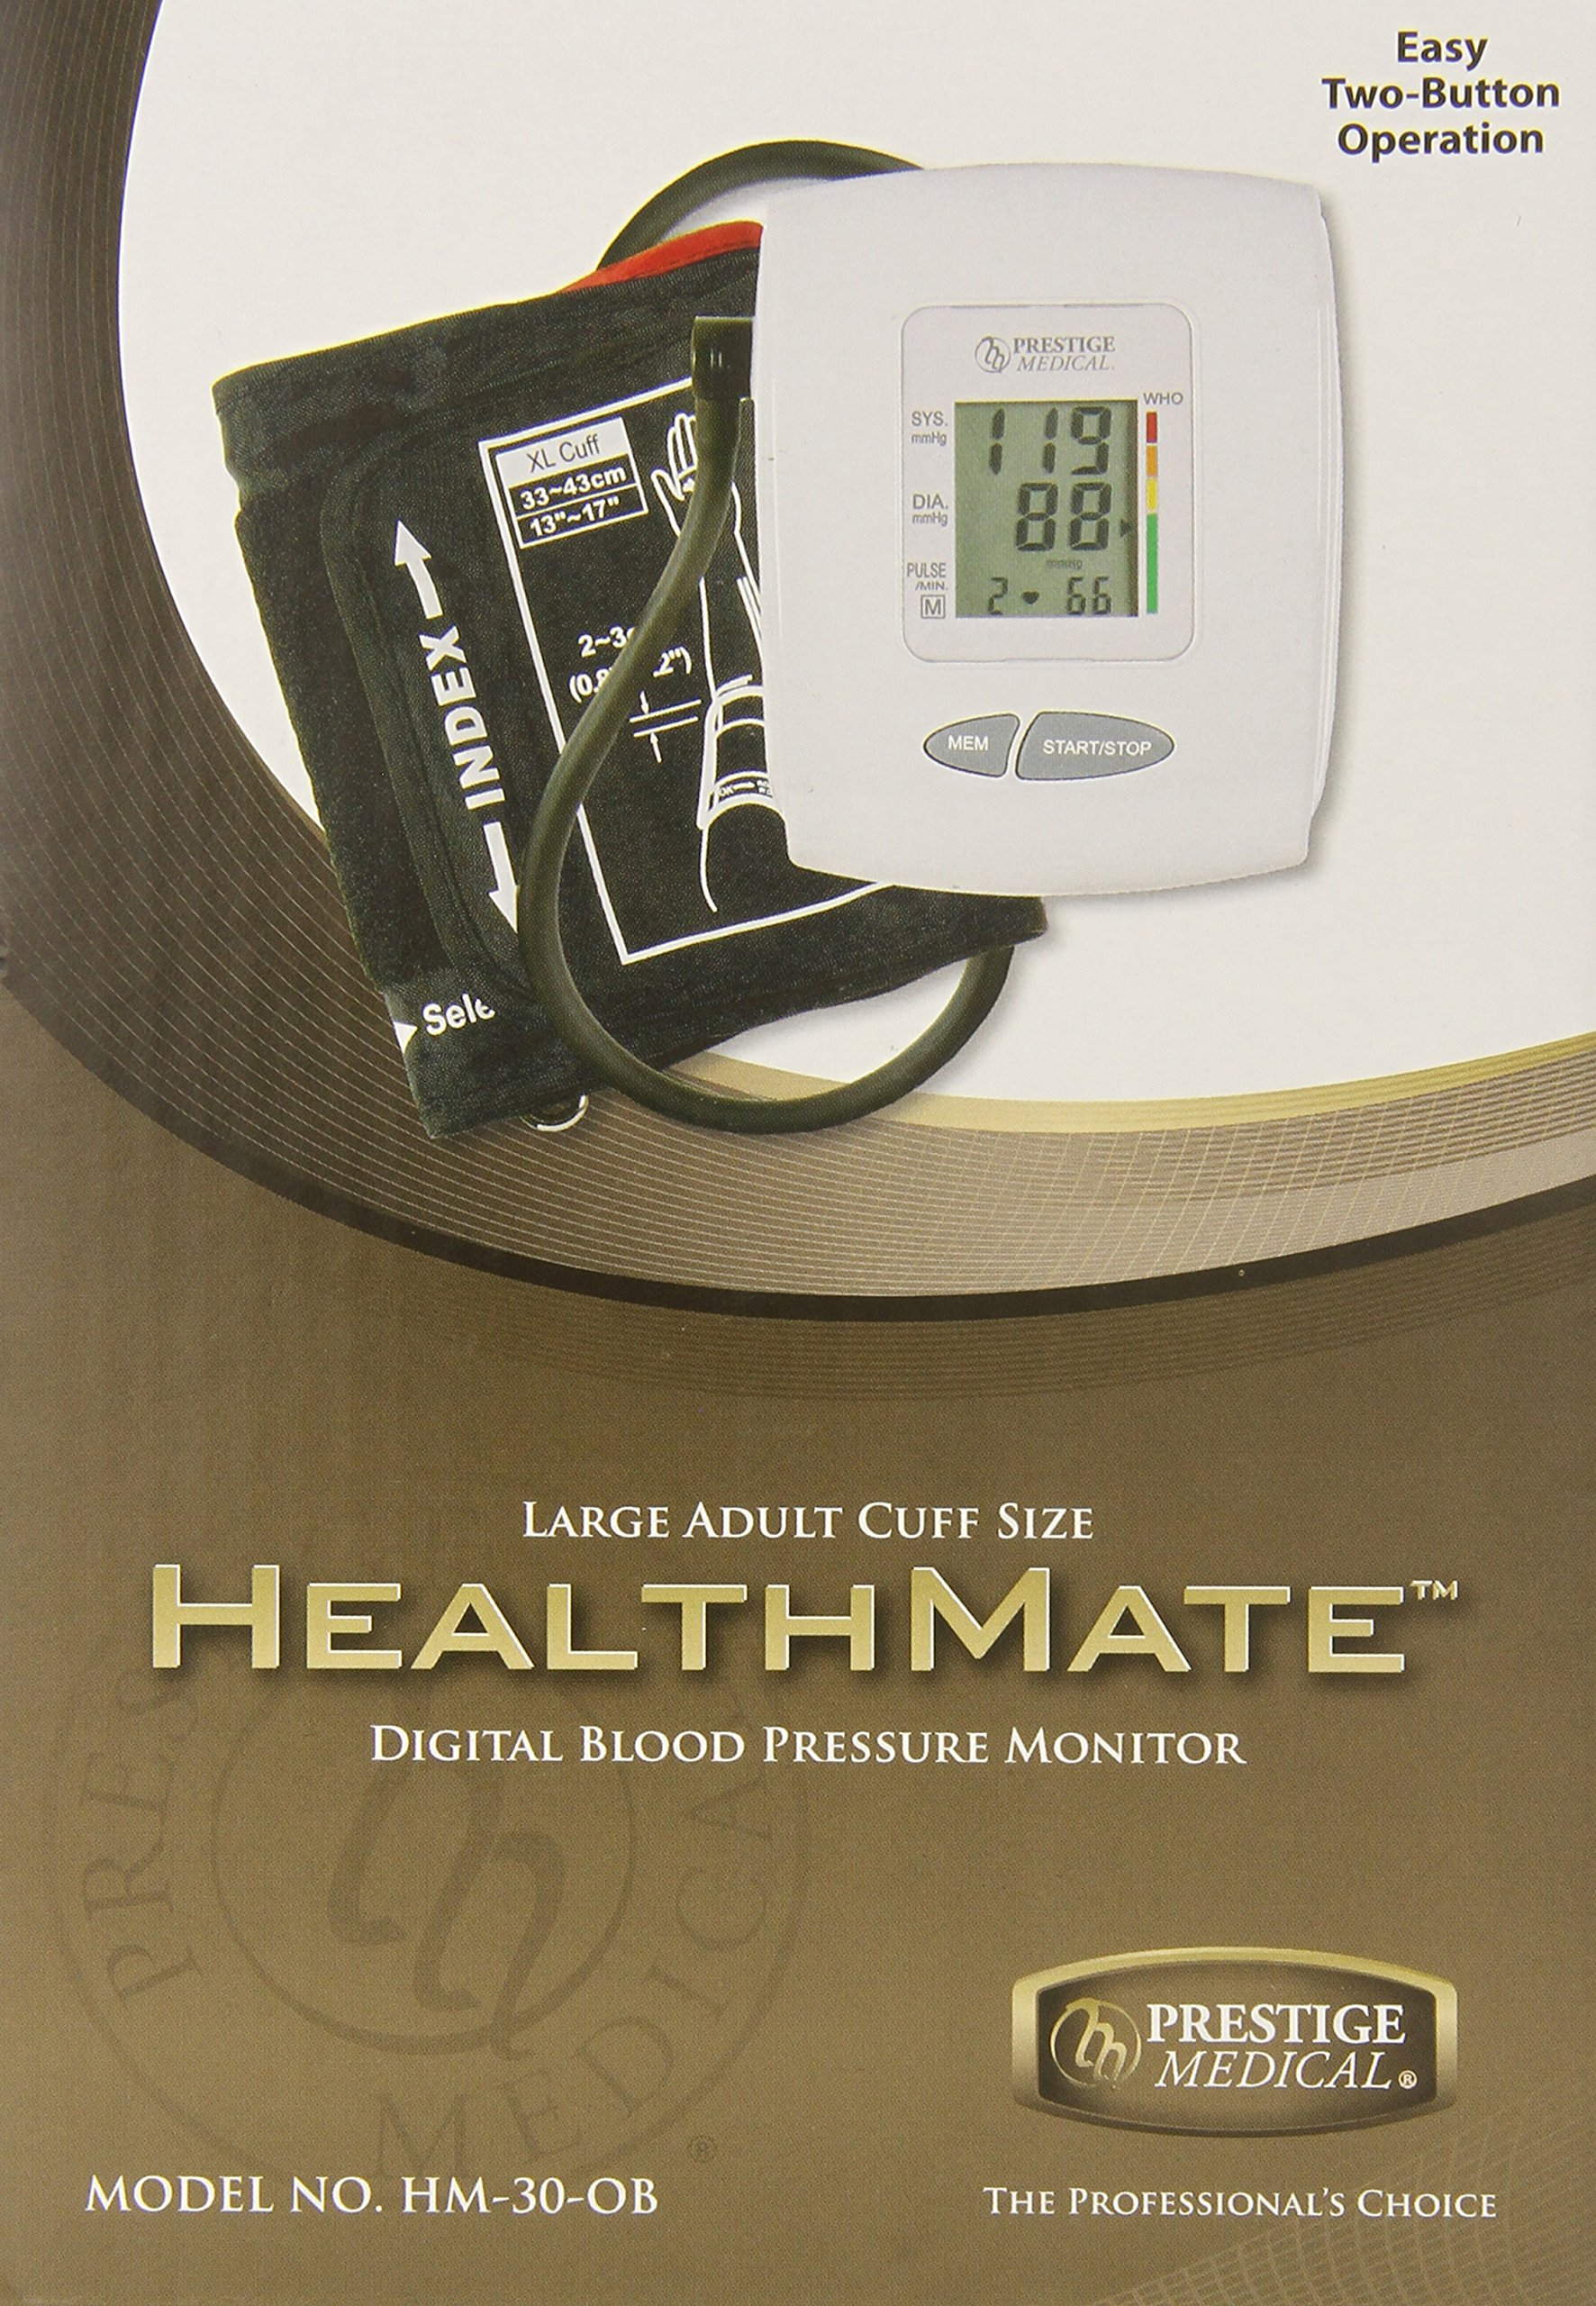 Prestige Medical HM-30-OB Large Adult Healthmate Digital Blood Pressure Monitor